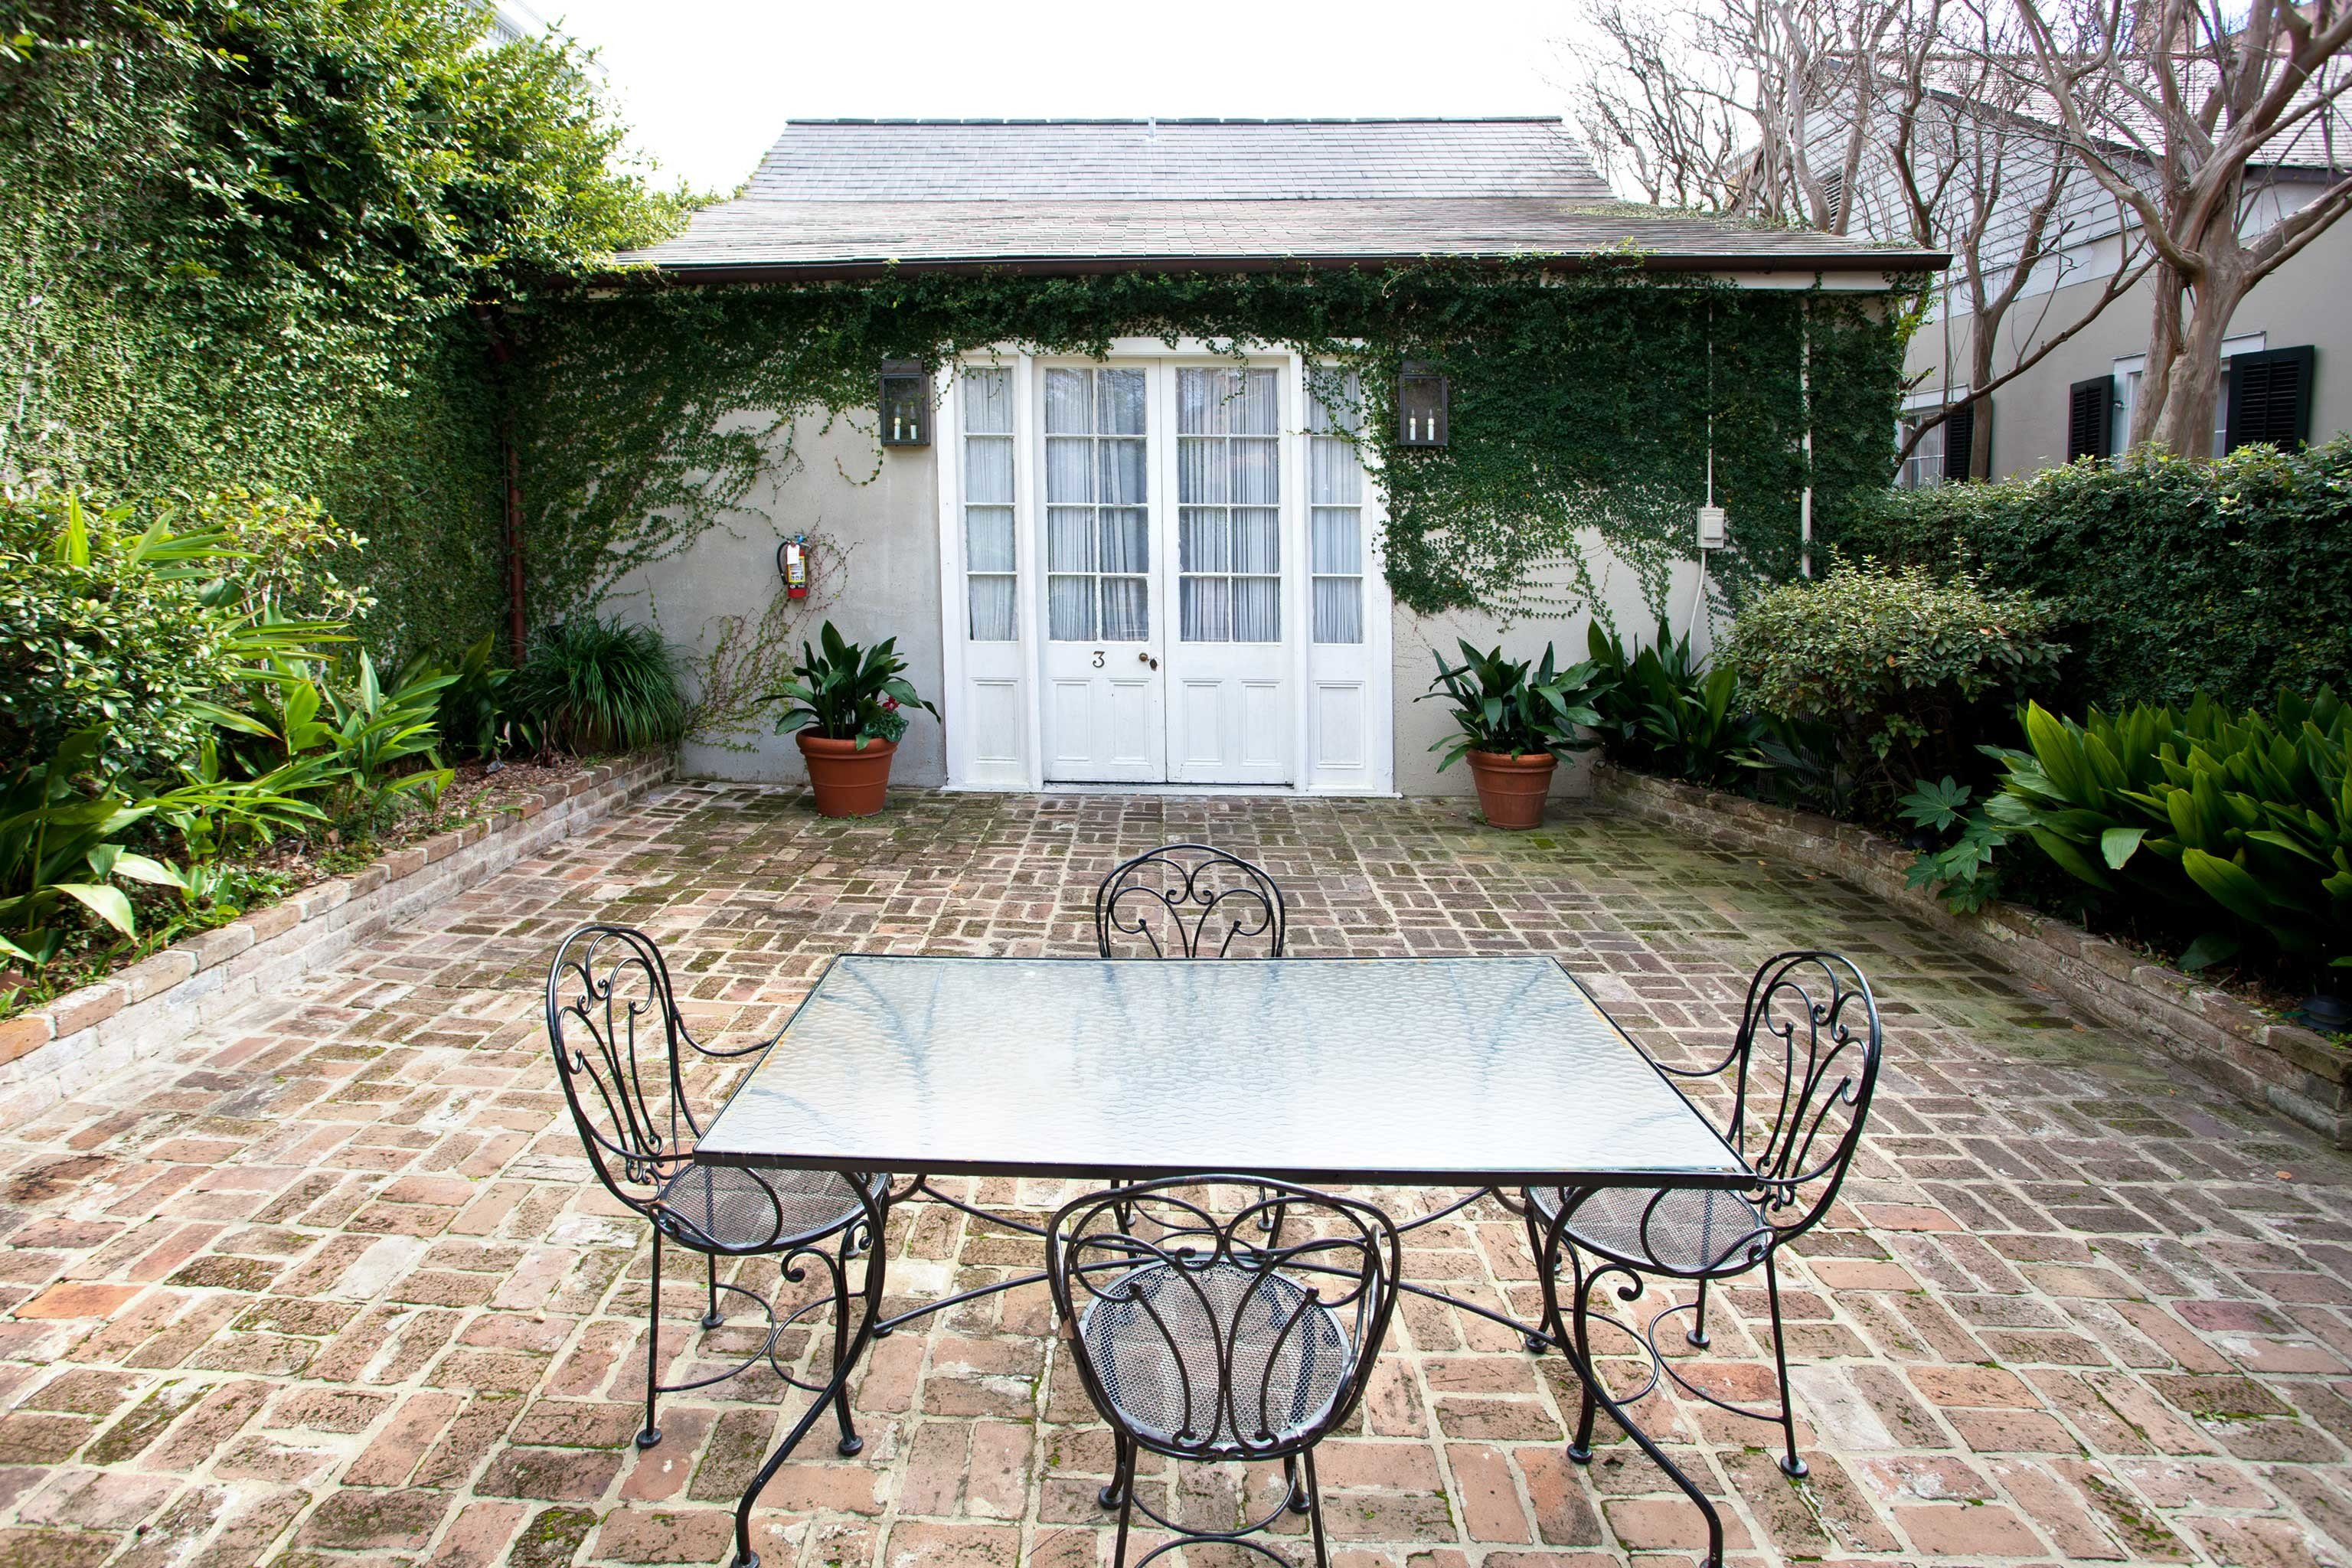 B&B Cultural Drink Eat Entertainment Grounds Nightlife ground tree bench house property park backyard stone yard home Courtyard cottage brick outdoor structure porch Garden Patio Villa farmhouse orangery lawn landscaping handcart empty concrete bushes walkway